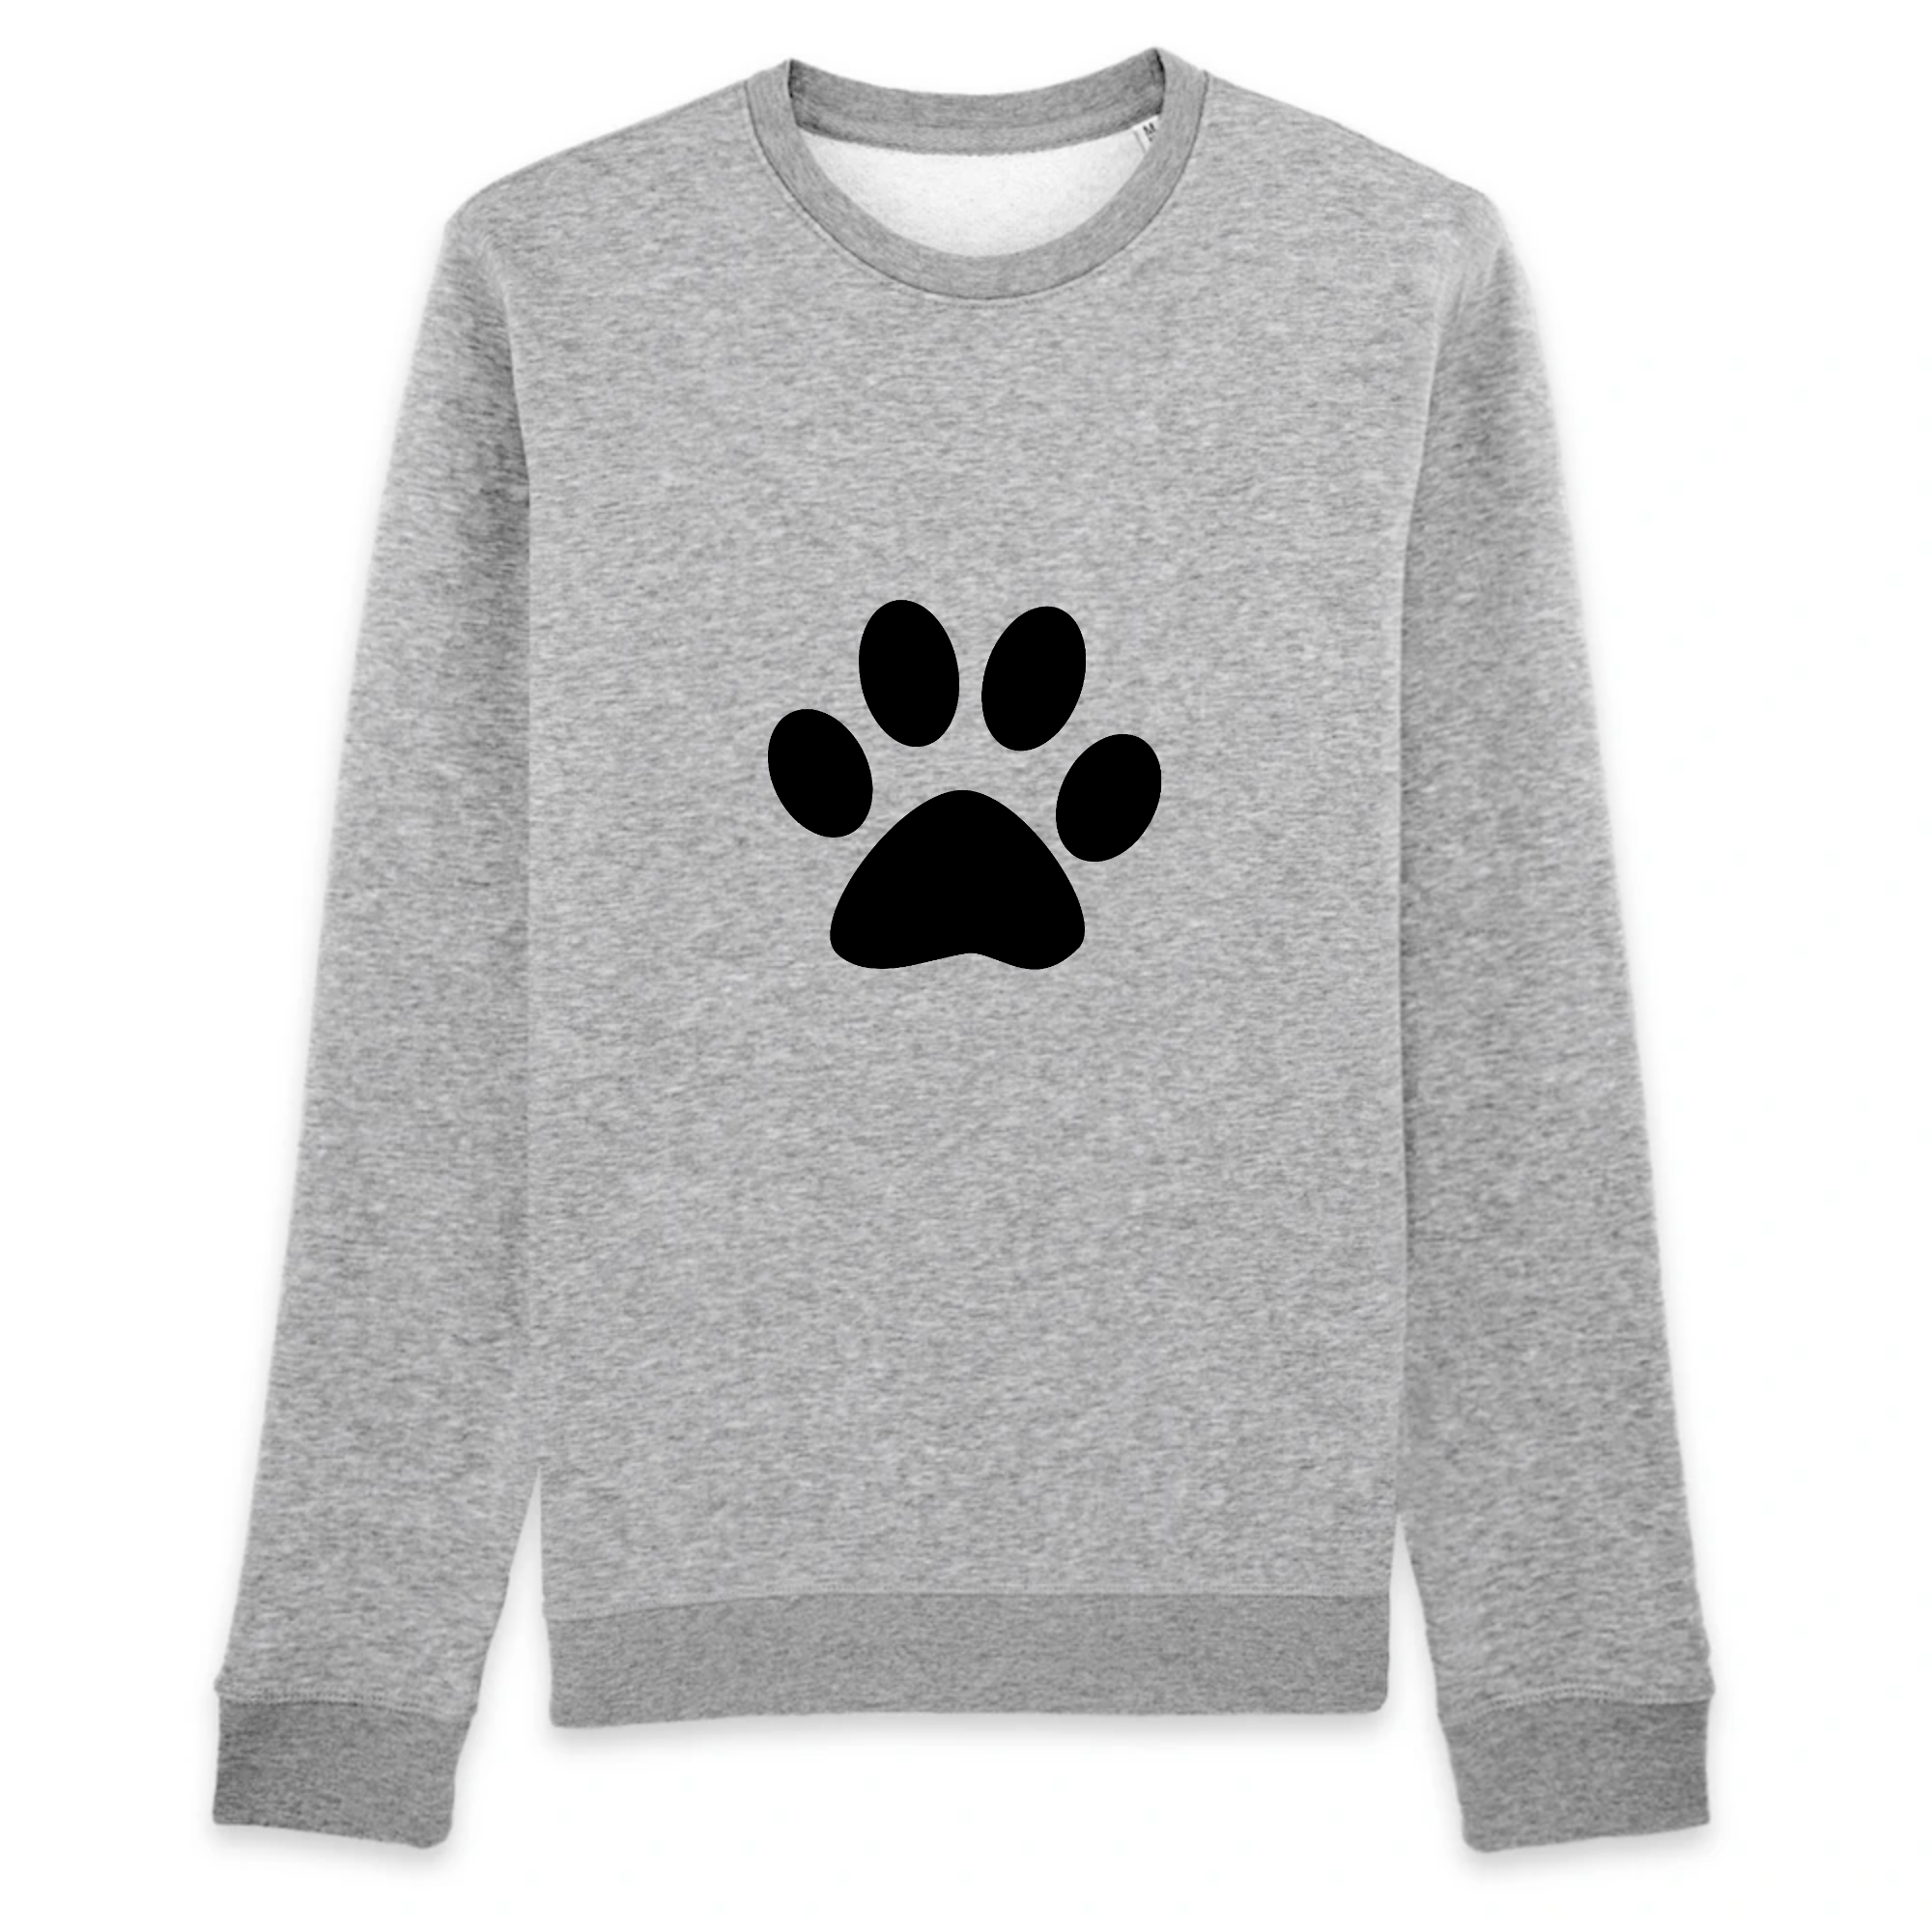 pull patte de chat couleur gris